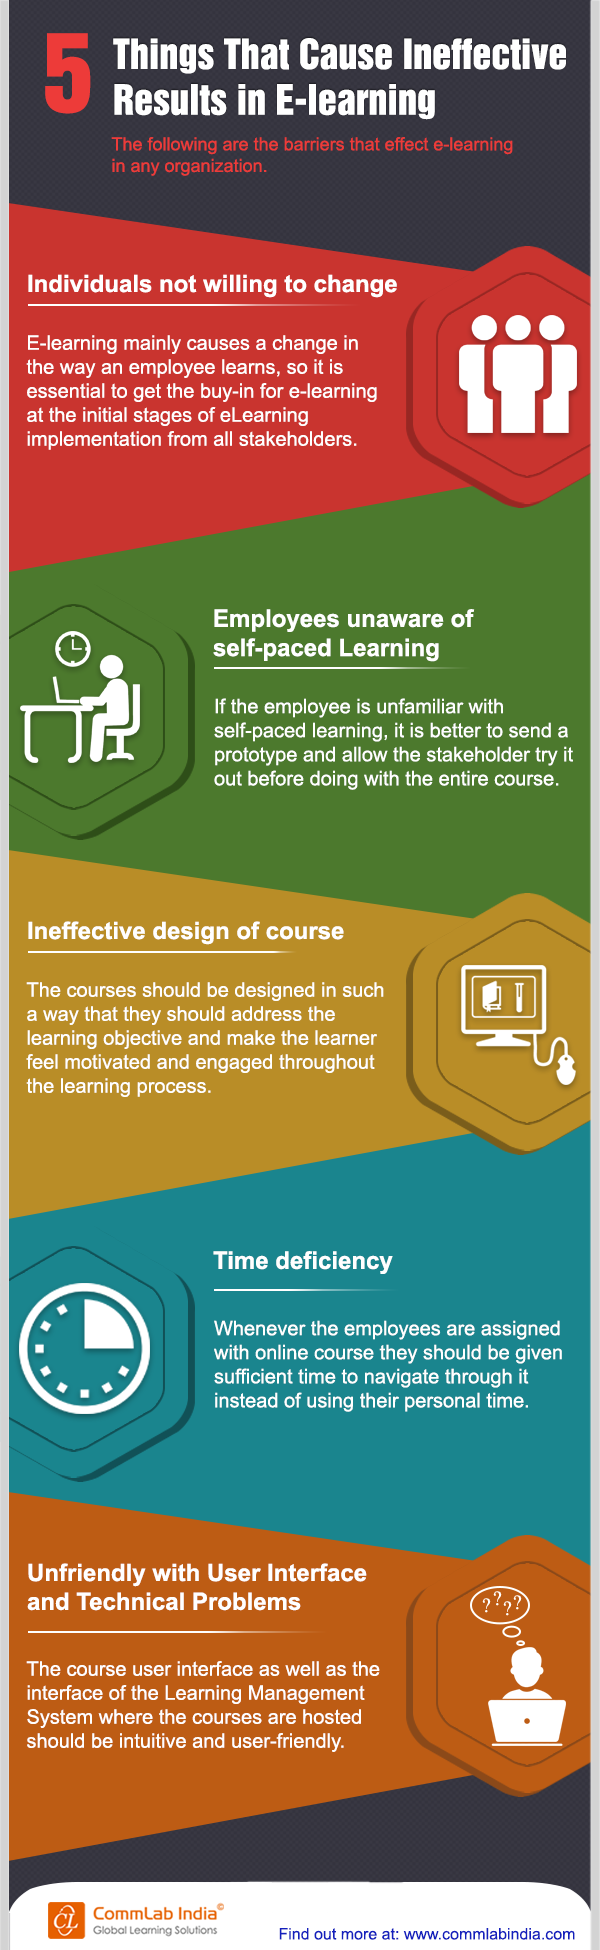 5 Things That Cause Ineffective Results in E-learning